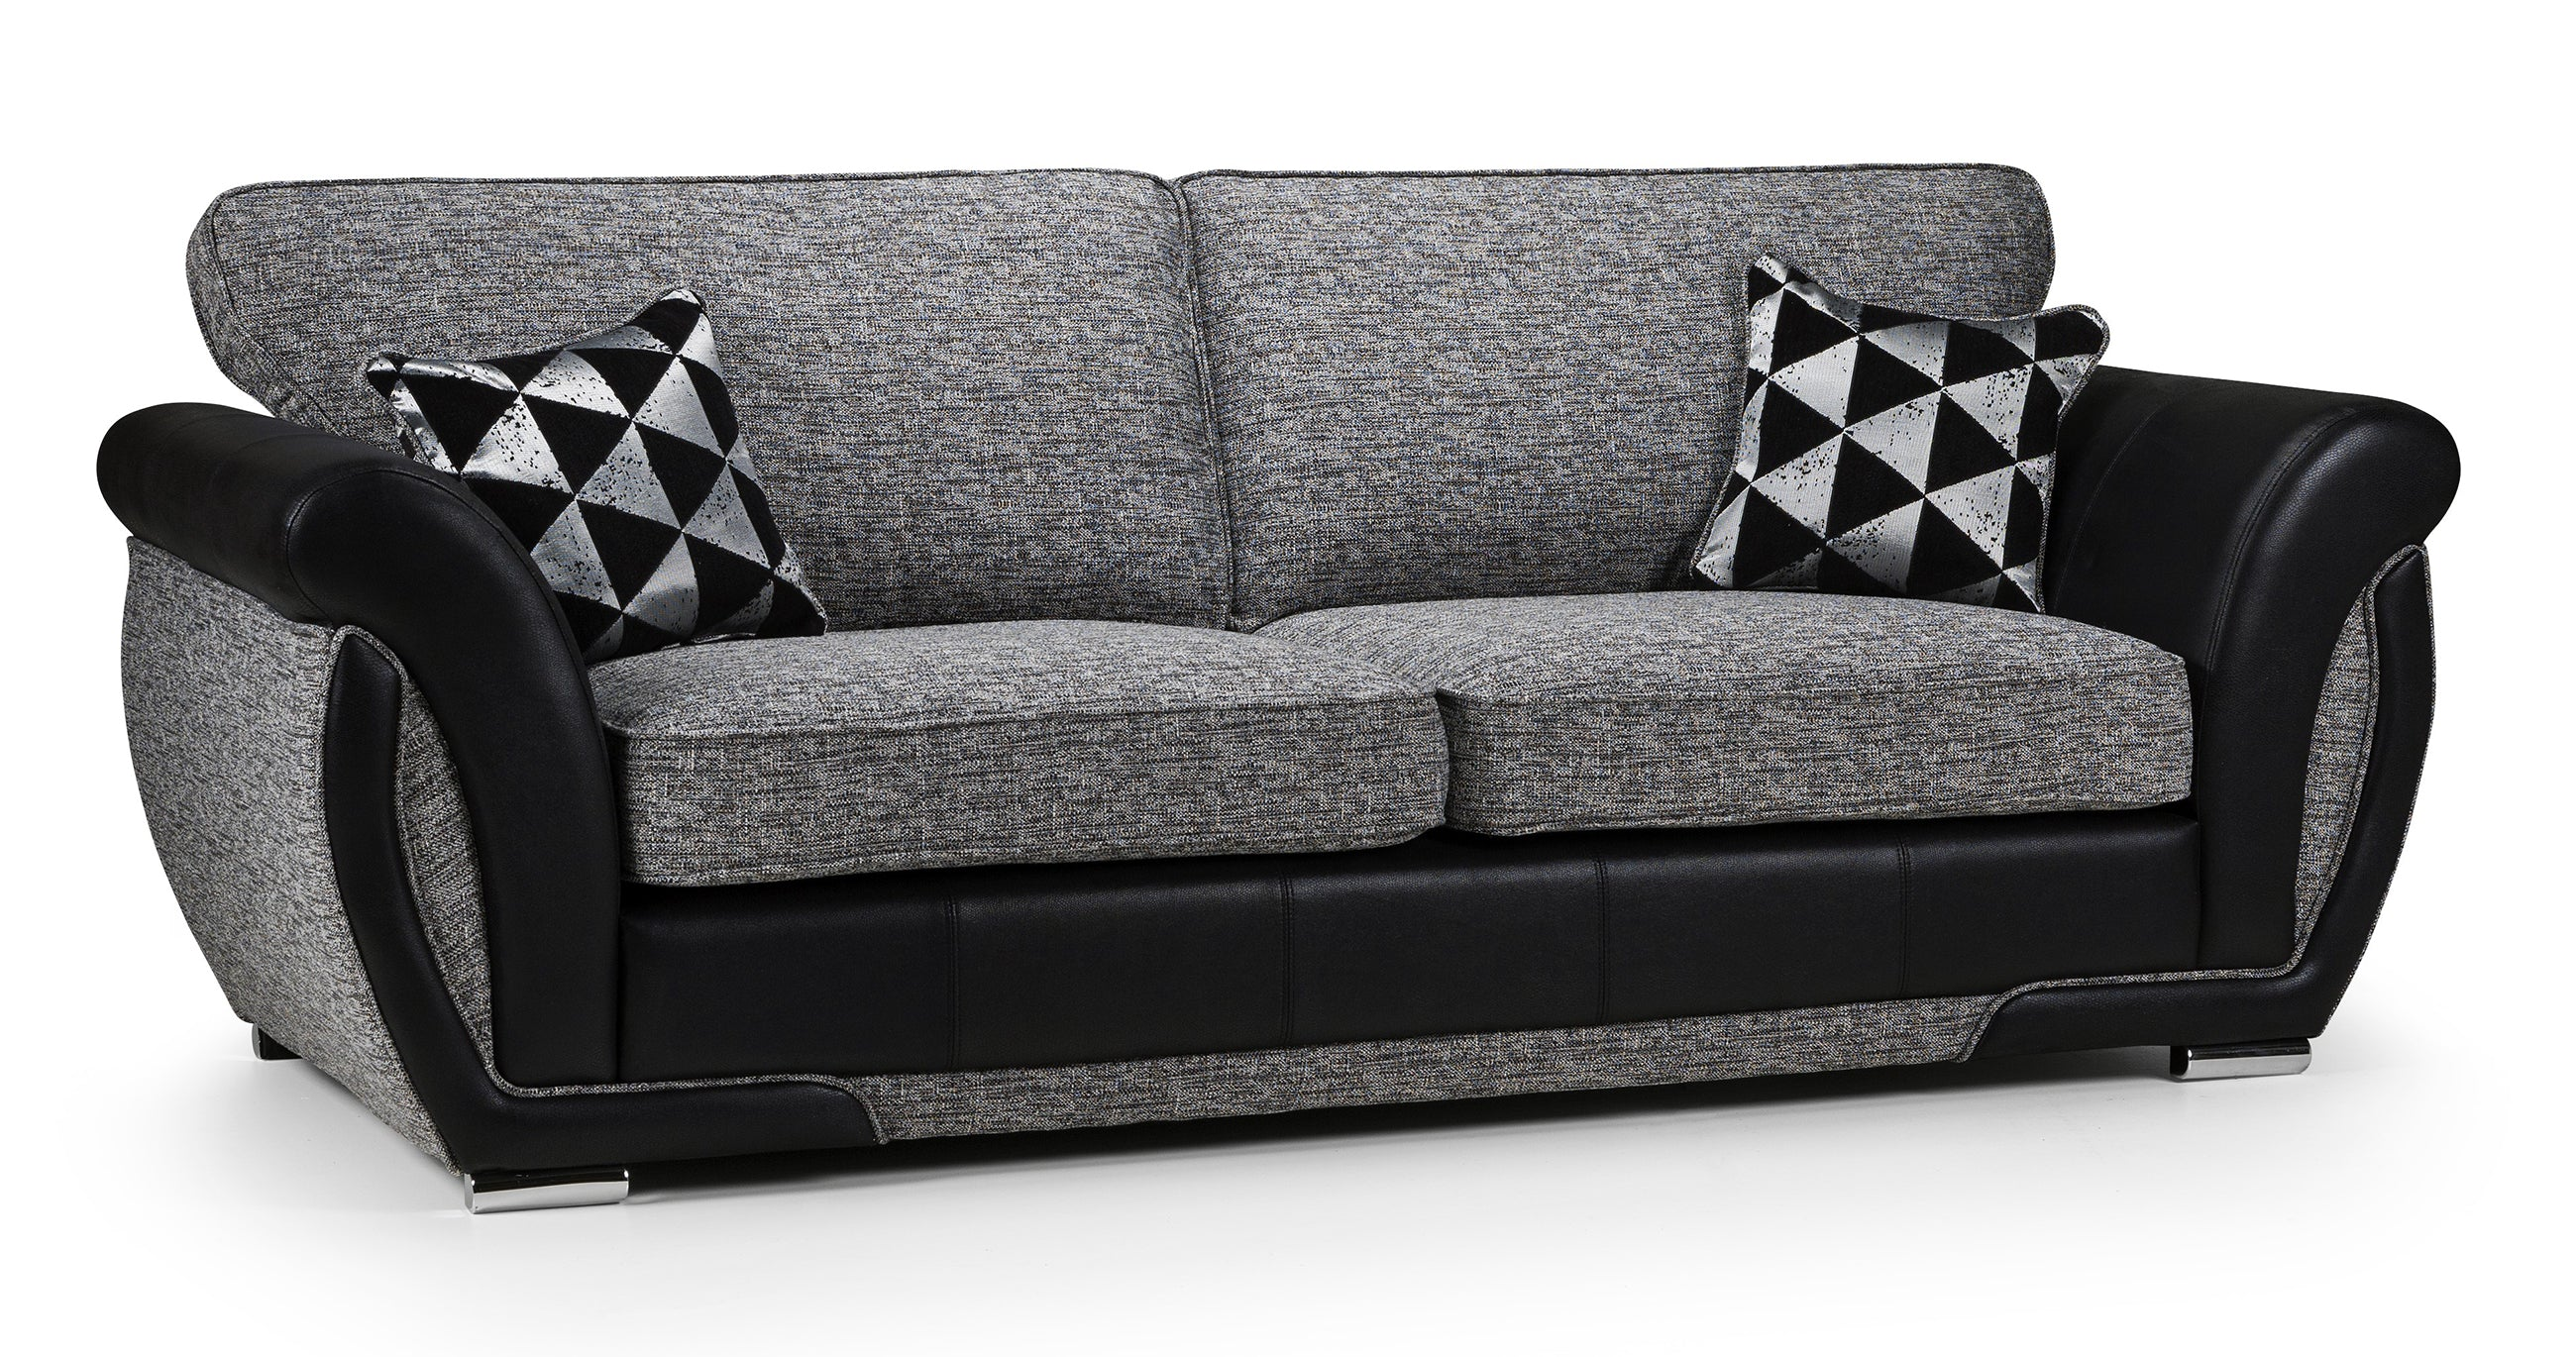 Awe Inspiring Settees On Finance In Castleford Kc Sofas Home Remodeling Inspirations Genioncuboardxyz